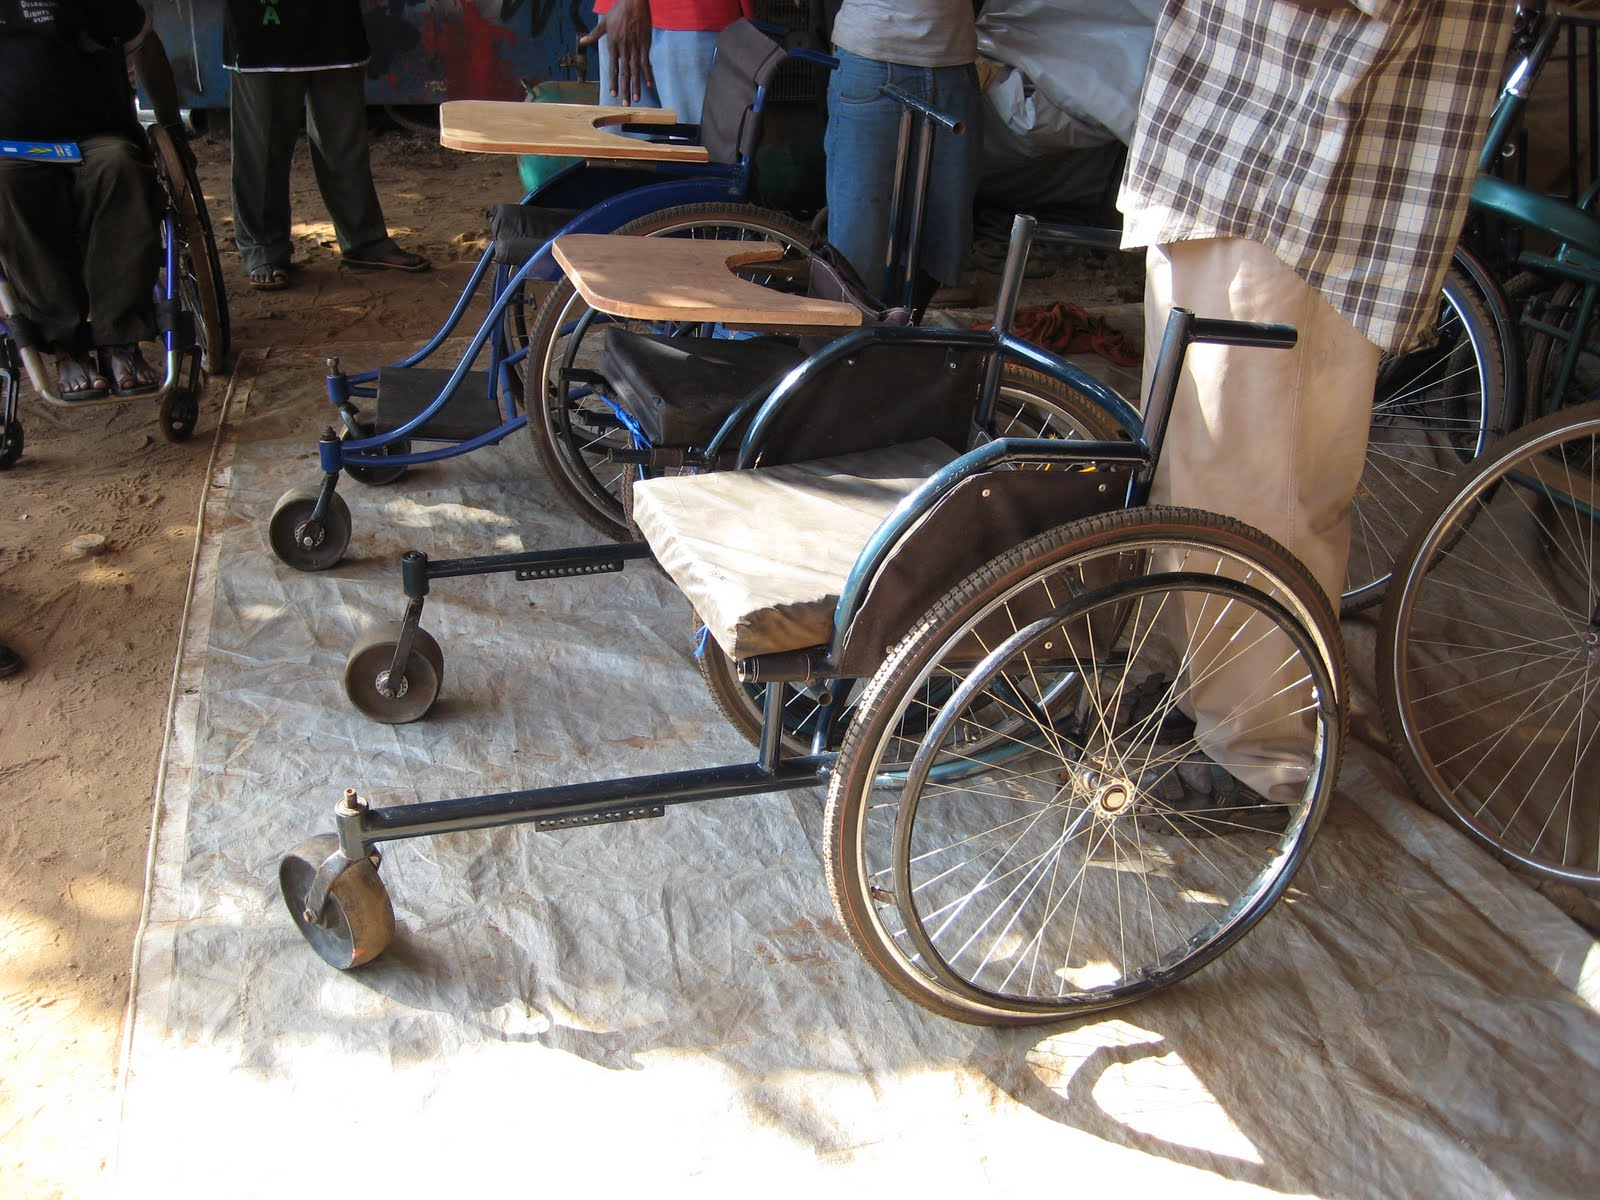 wheelchair project chair set of 2 the barlows in uganda making a wheel